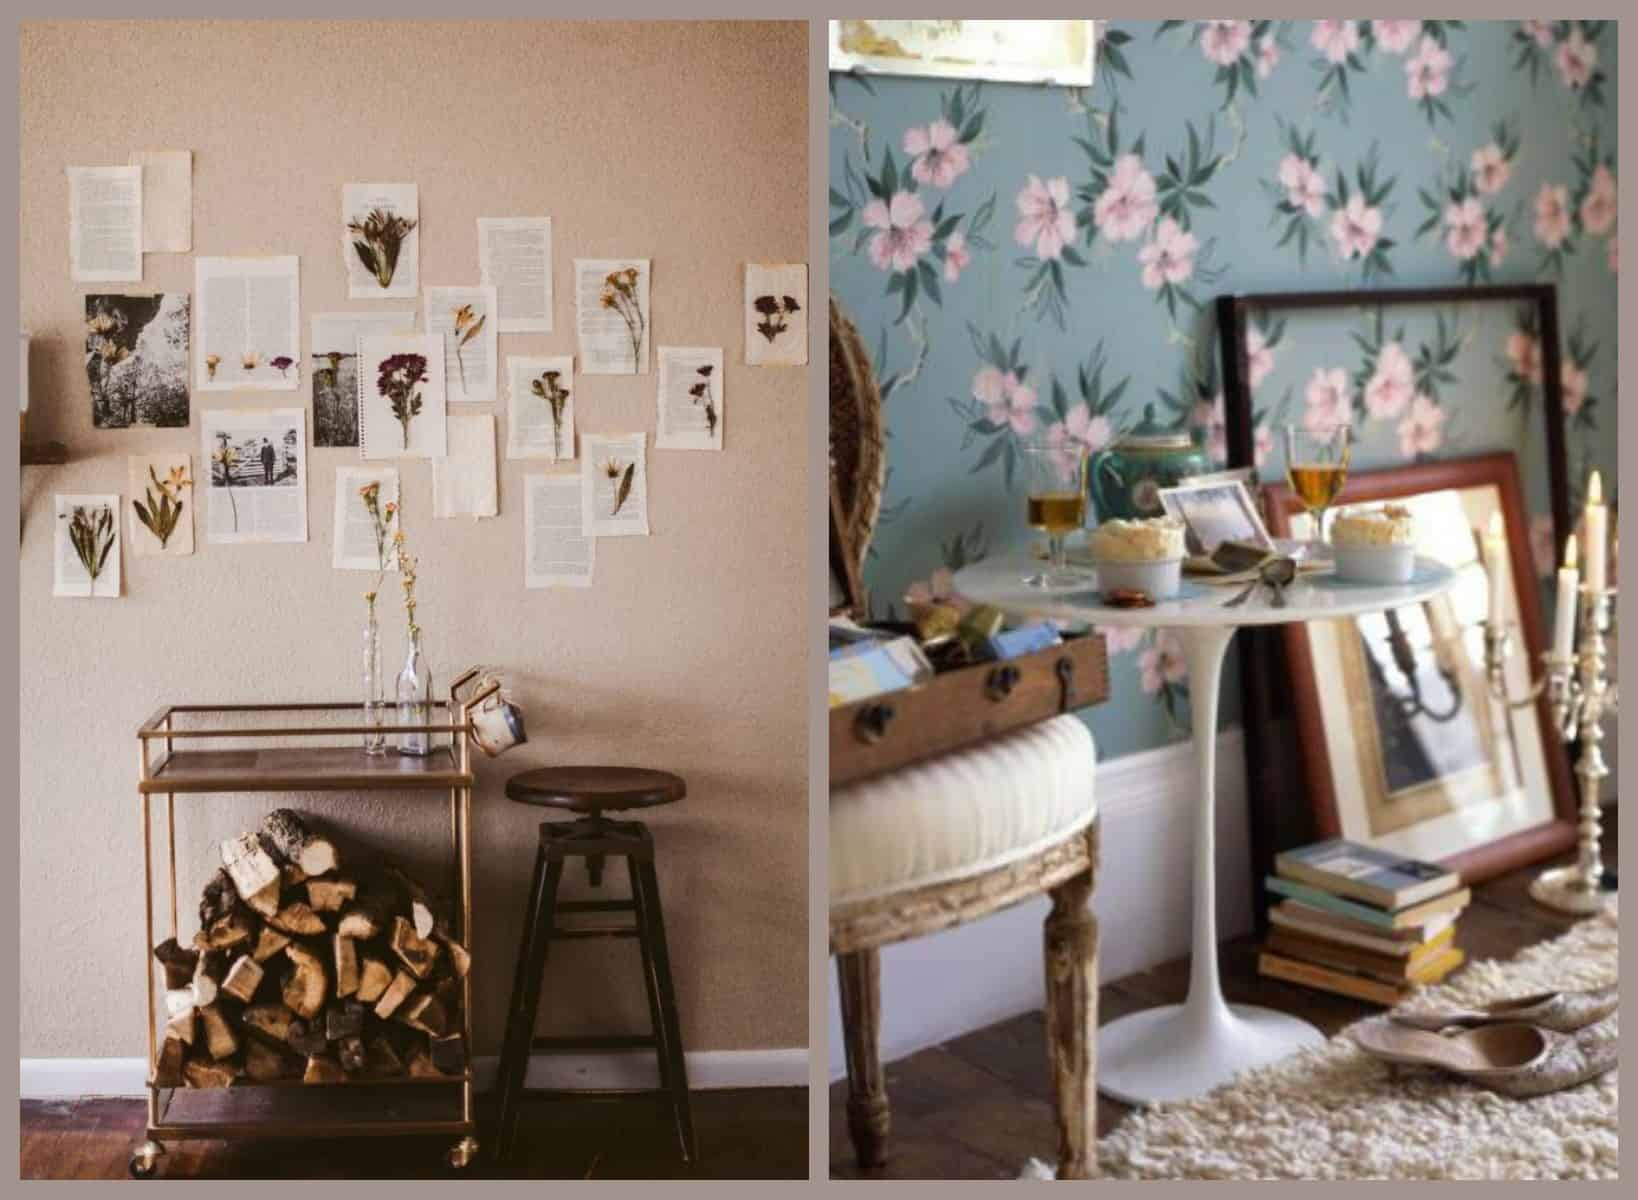 Diy 10 idee su come decorare una parete di casa for Immagini di casa